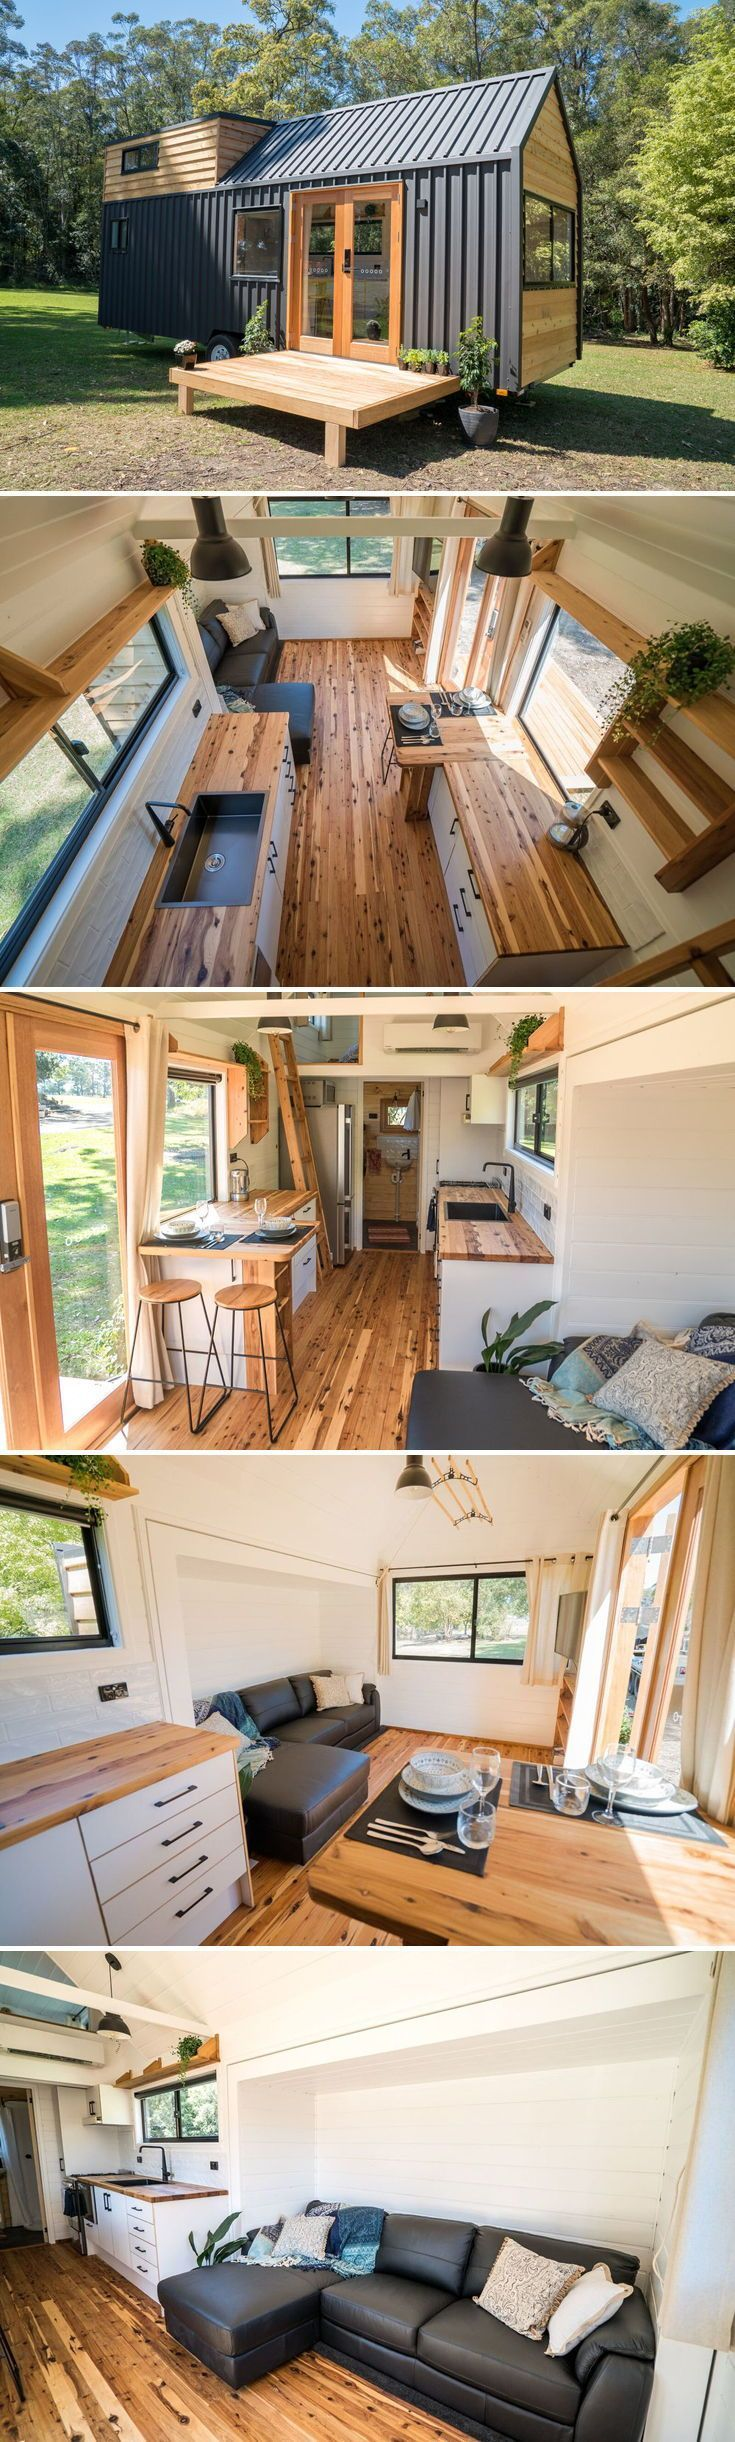 Sojourner by Häuslein Tiny House Co Tiny Living